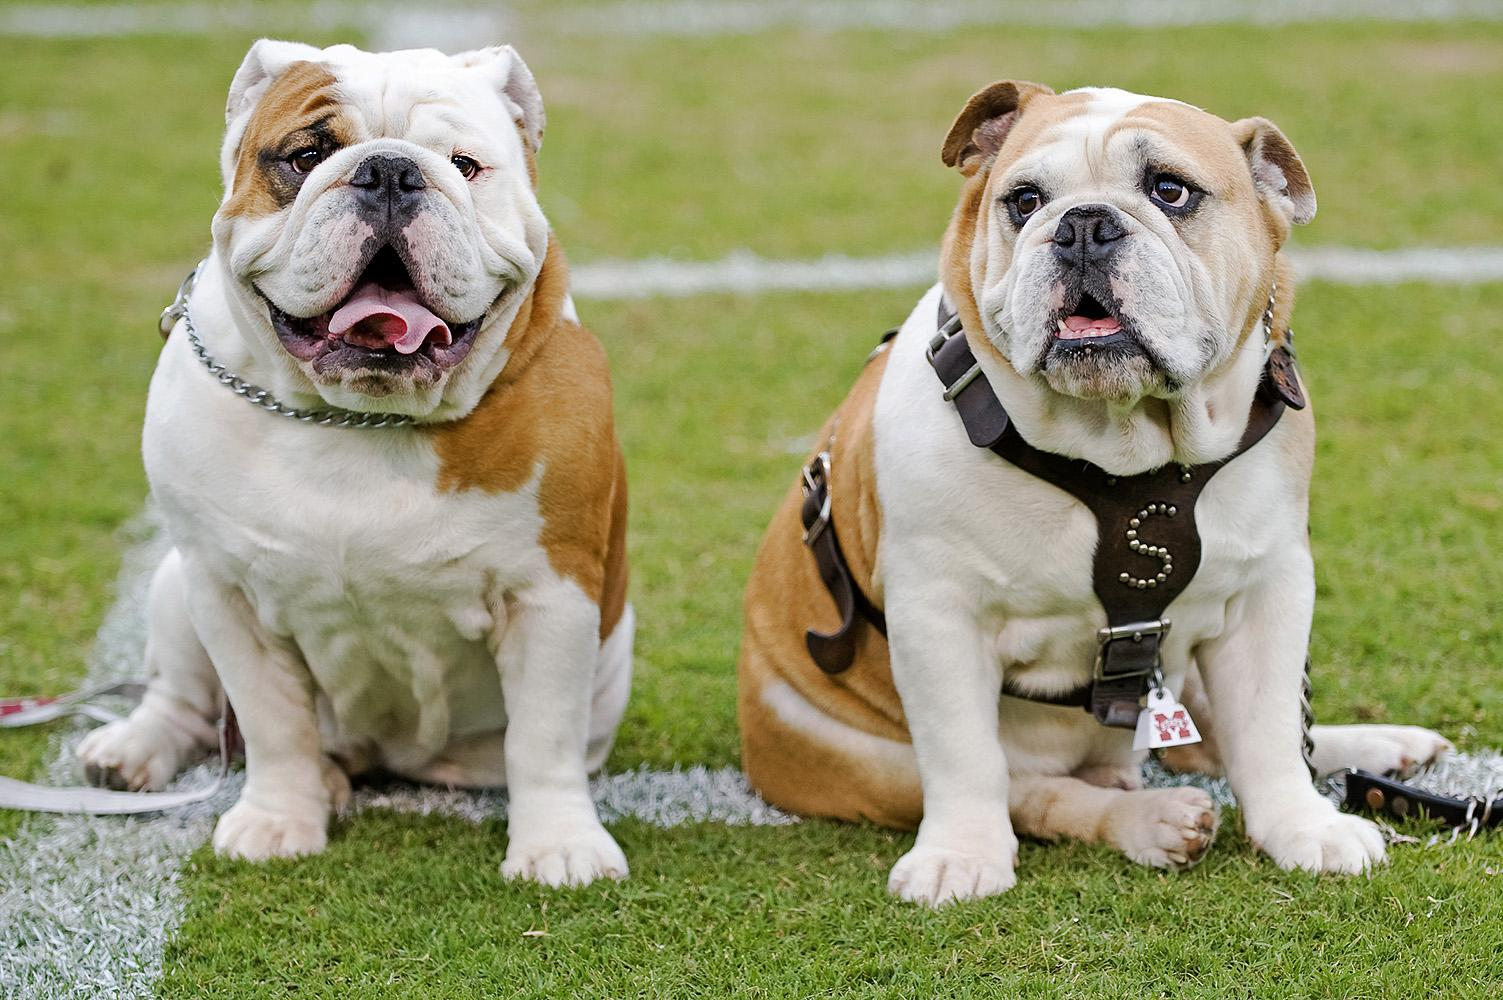 Champ, left, Mississippi State University's new Bully XX, sits on the Scott Field athletic turf with Bully XIX, his father, Tonka. (Photo by MSU University Relations/Kristen Hines Baker)